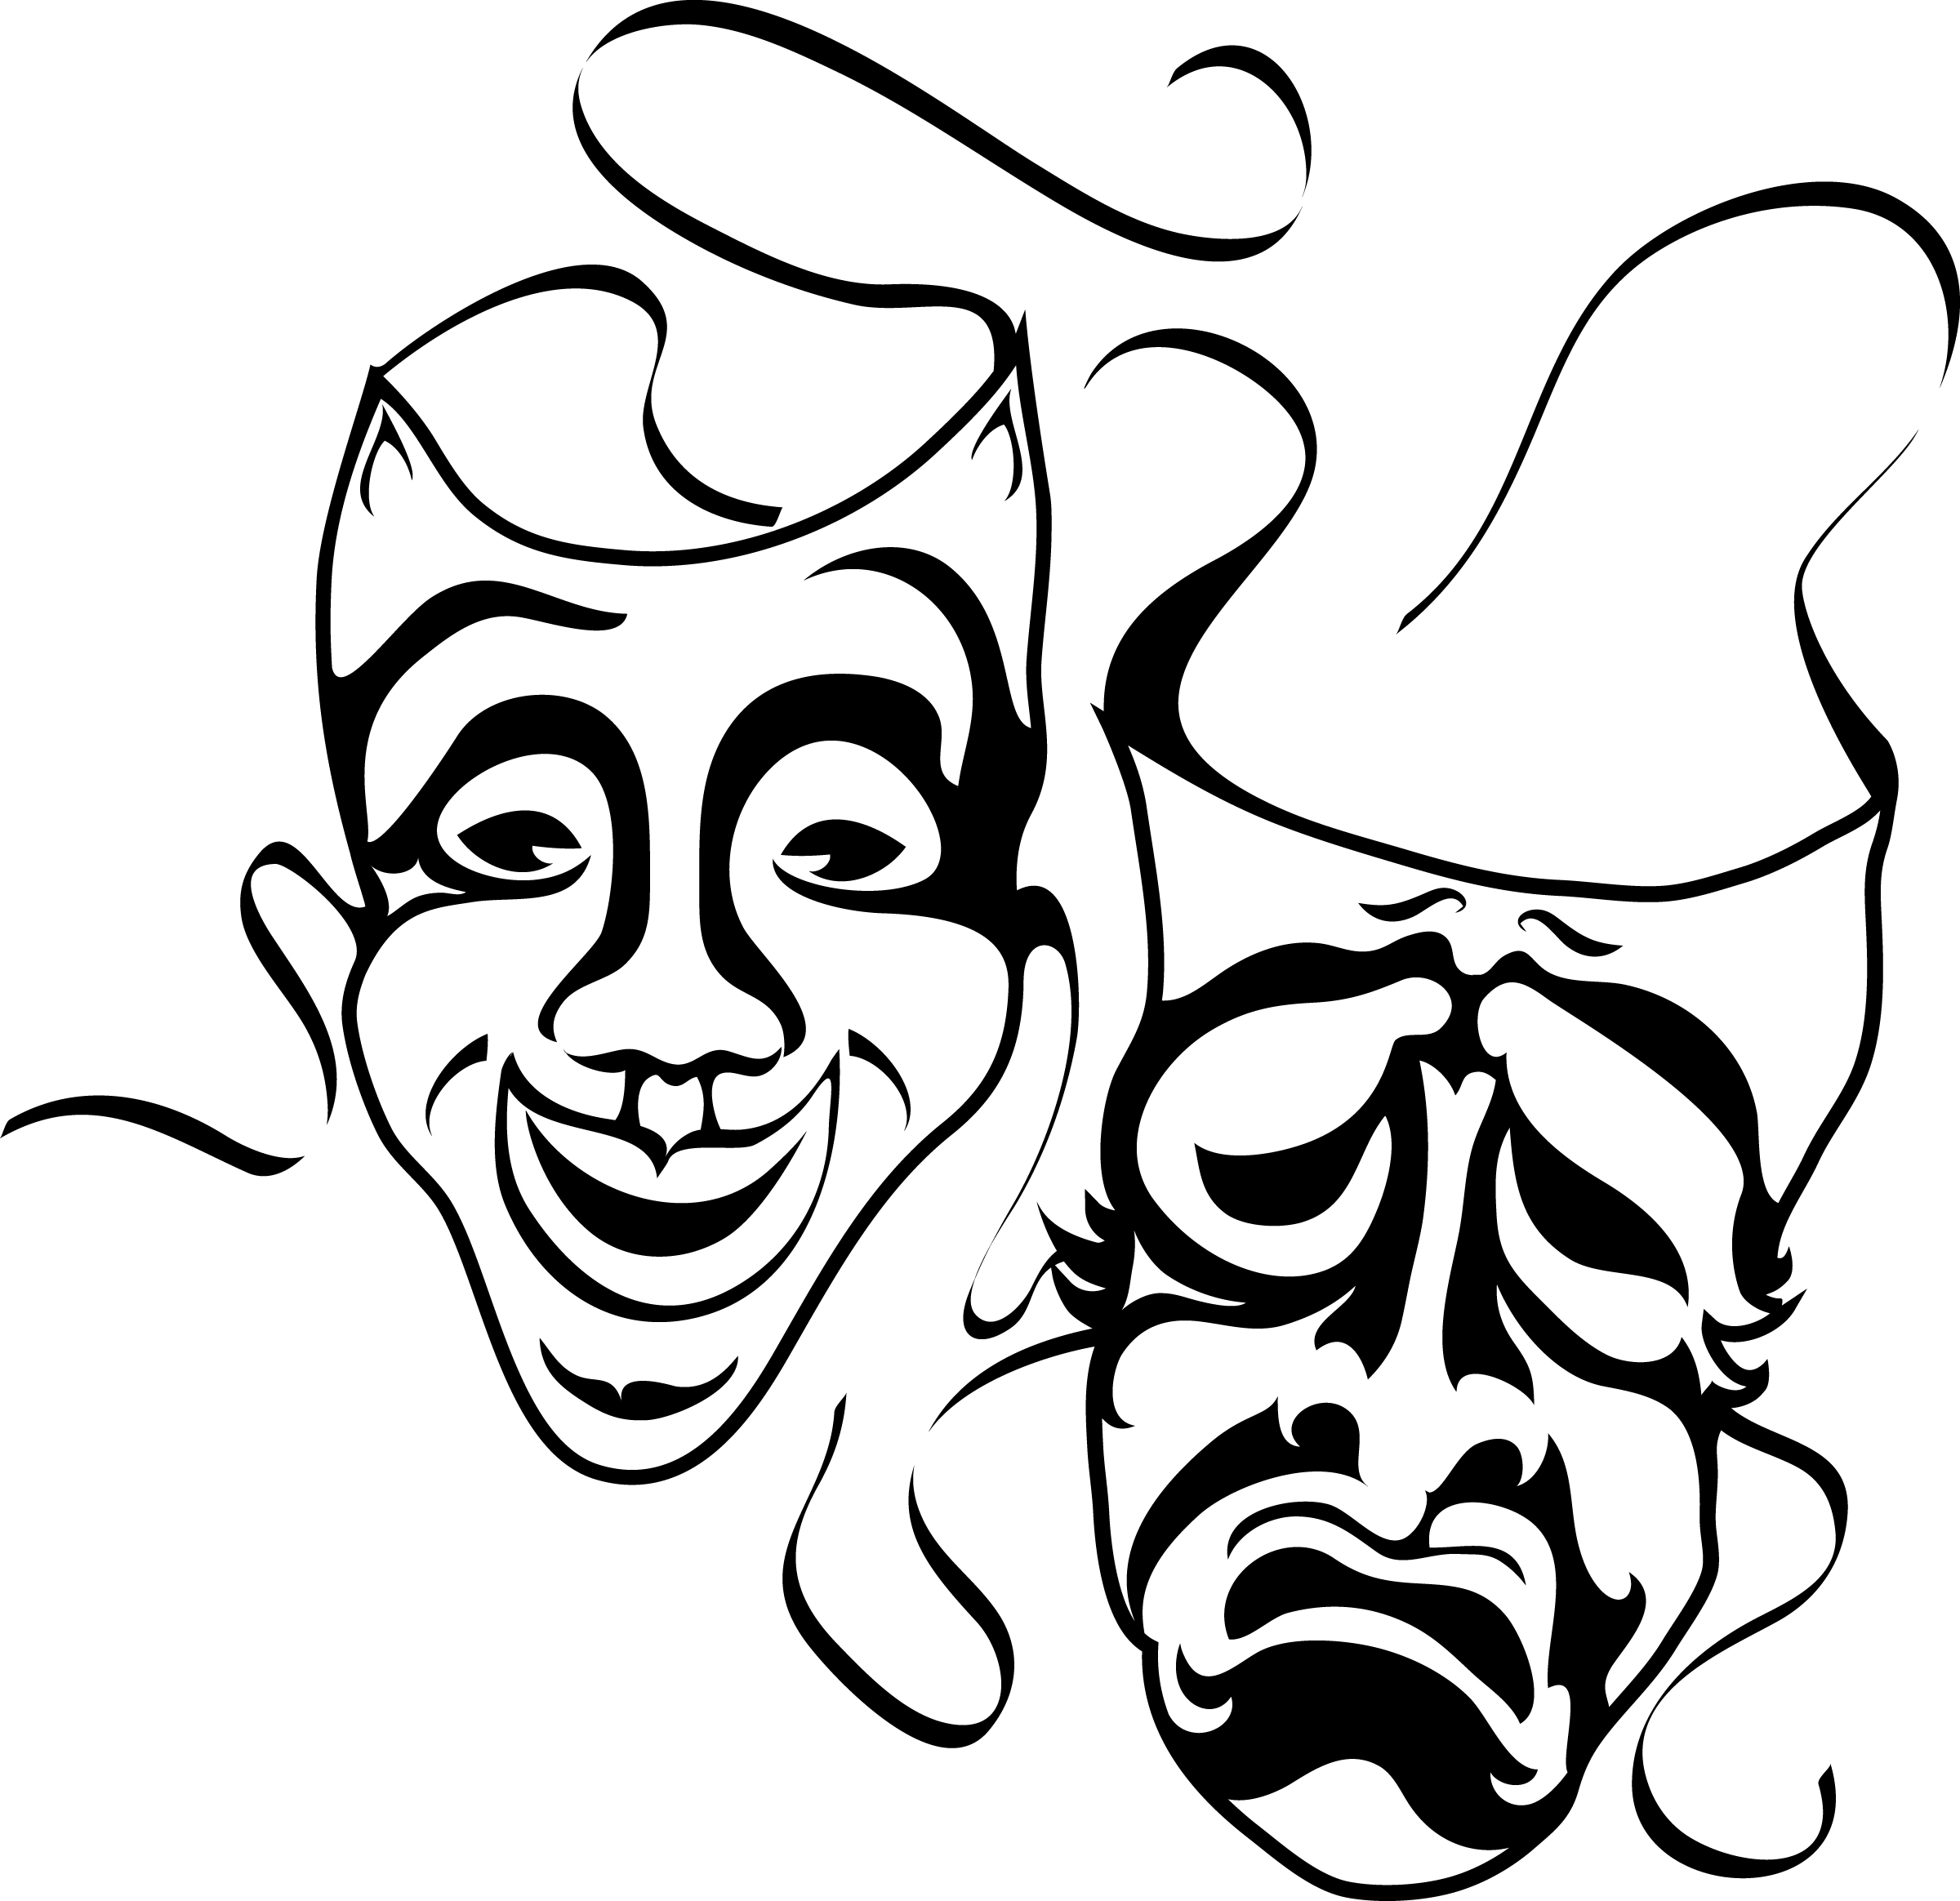 Comedy/drama Masks - ClipArt Best